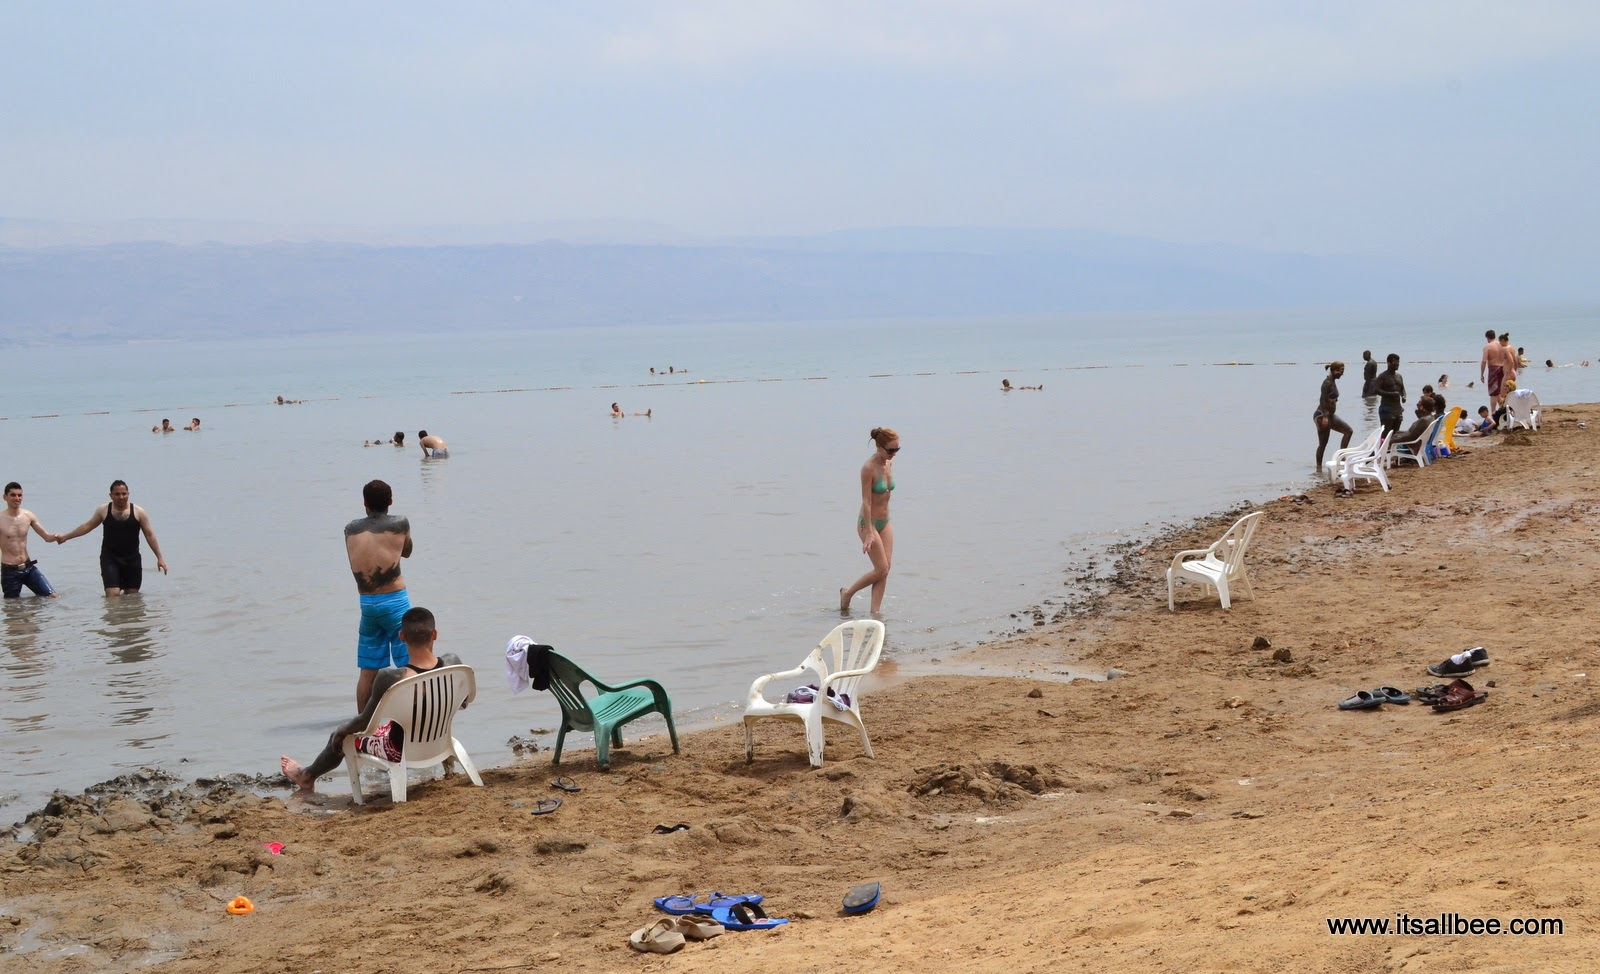 Israel Dead Sea Floating | Why Dead Sea Floating Is A Must On Any Israel Itinerary